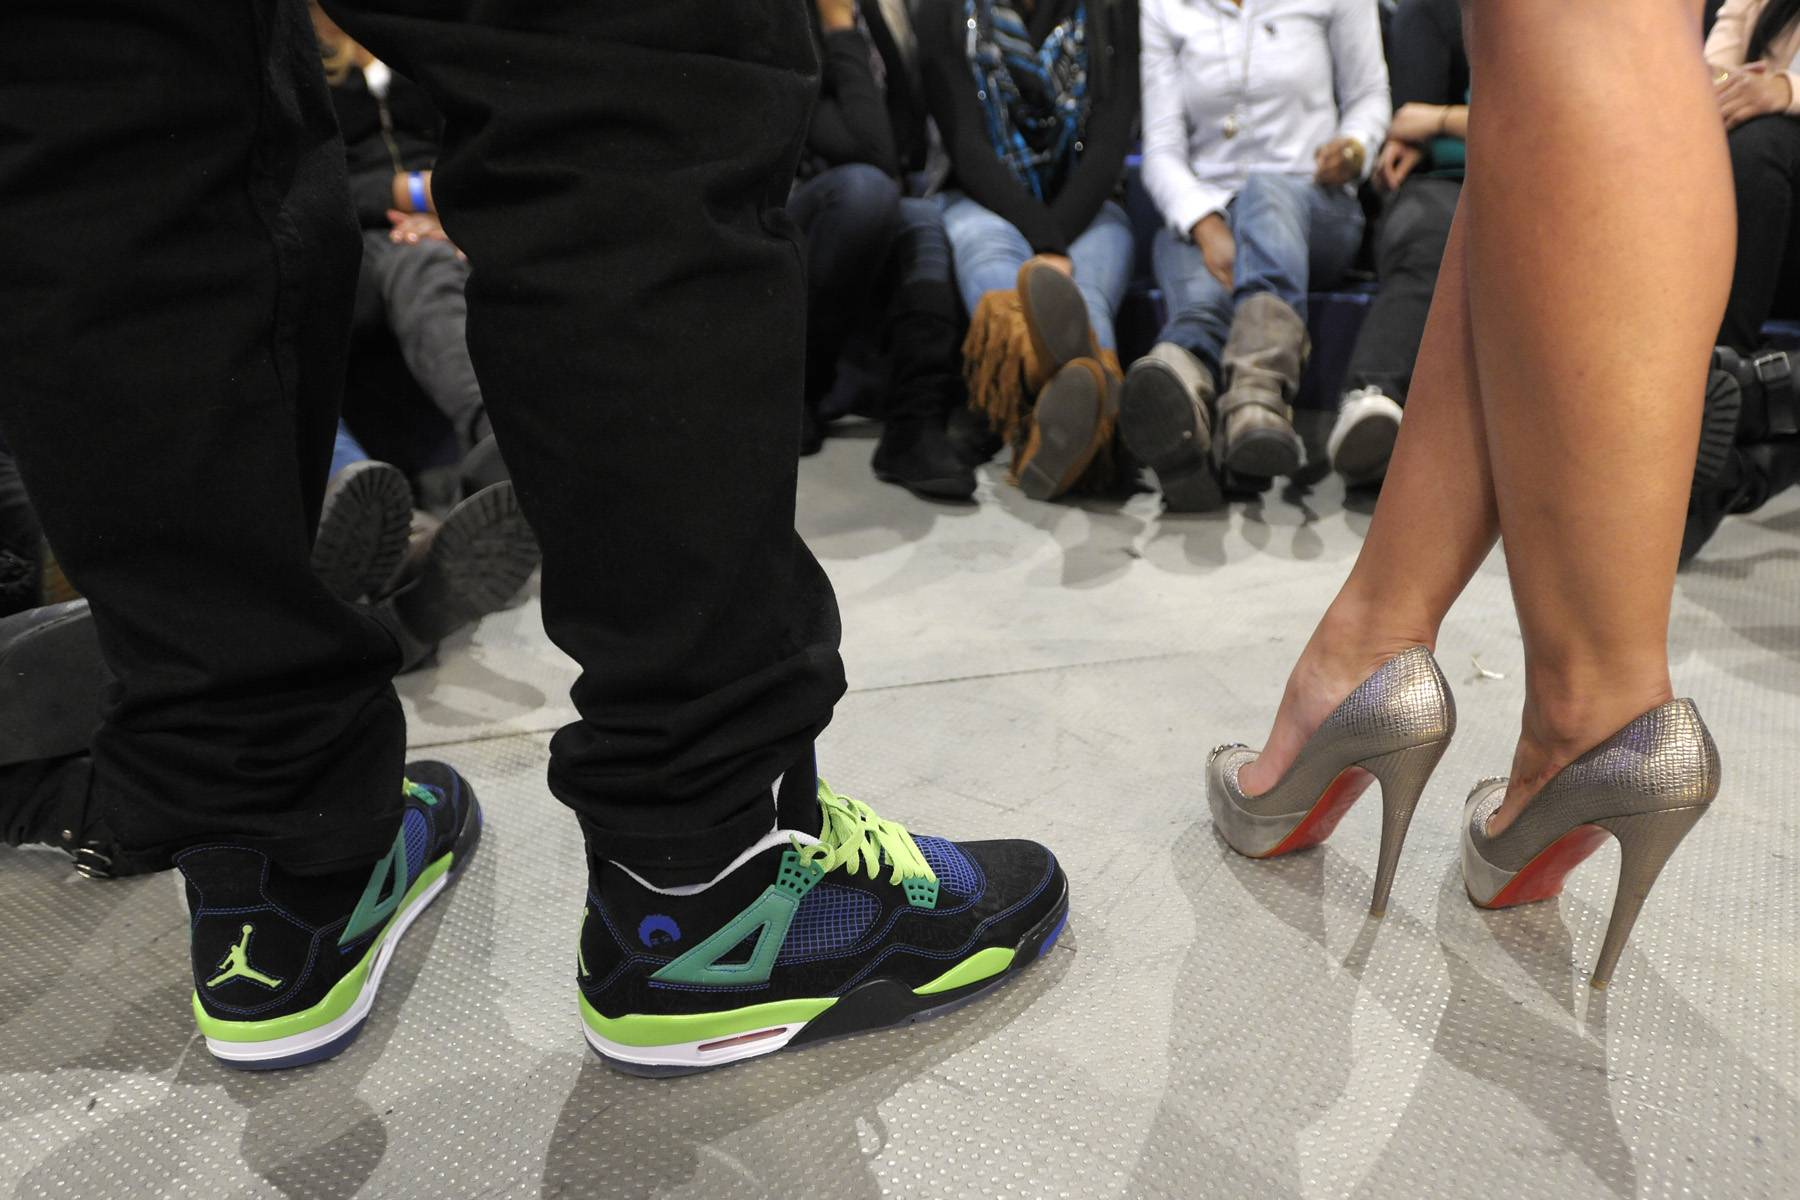 Shoe Game - Fat Joe and Rocsi Diaz rocking some very different footwear at 106 & Park, January 3, 2012. (Photo: John Ricard / BET)